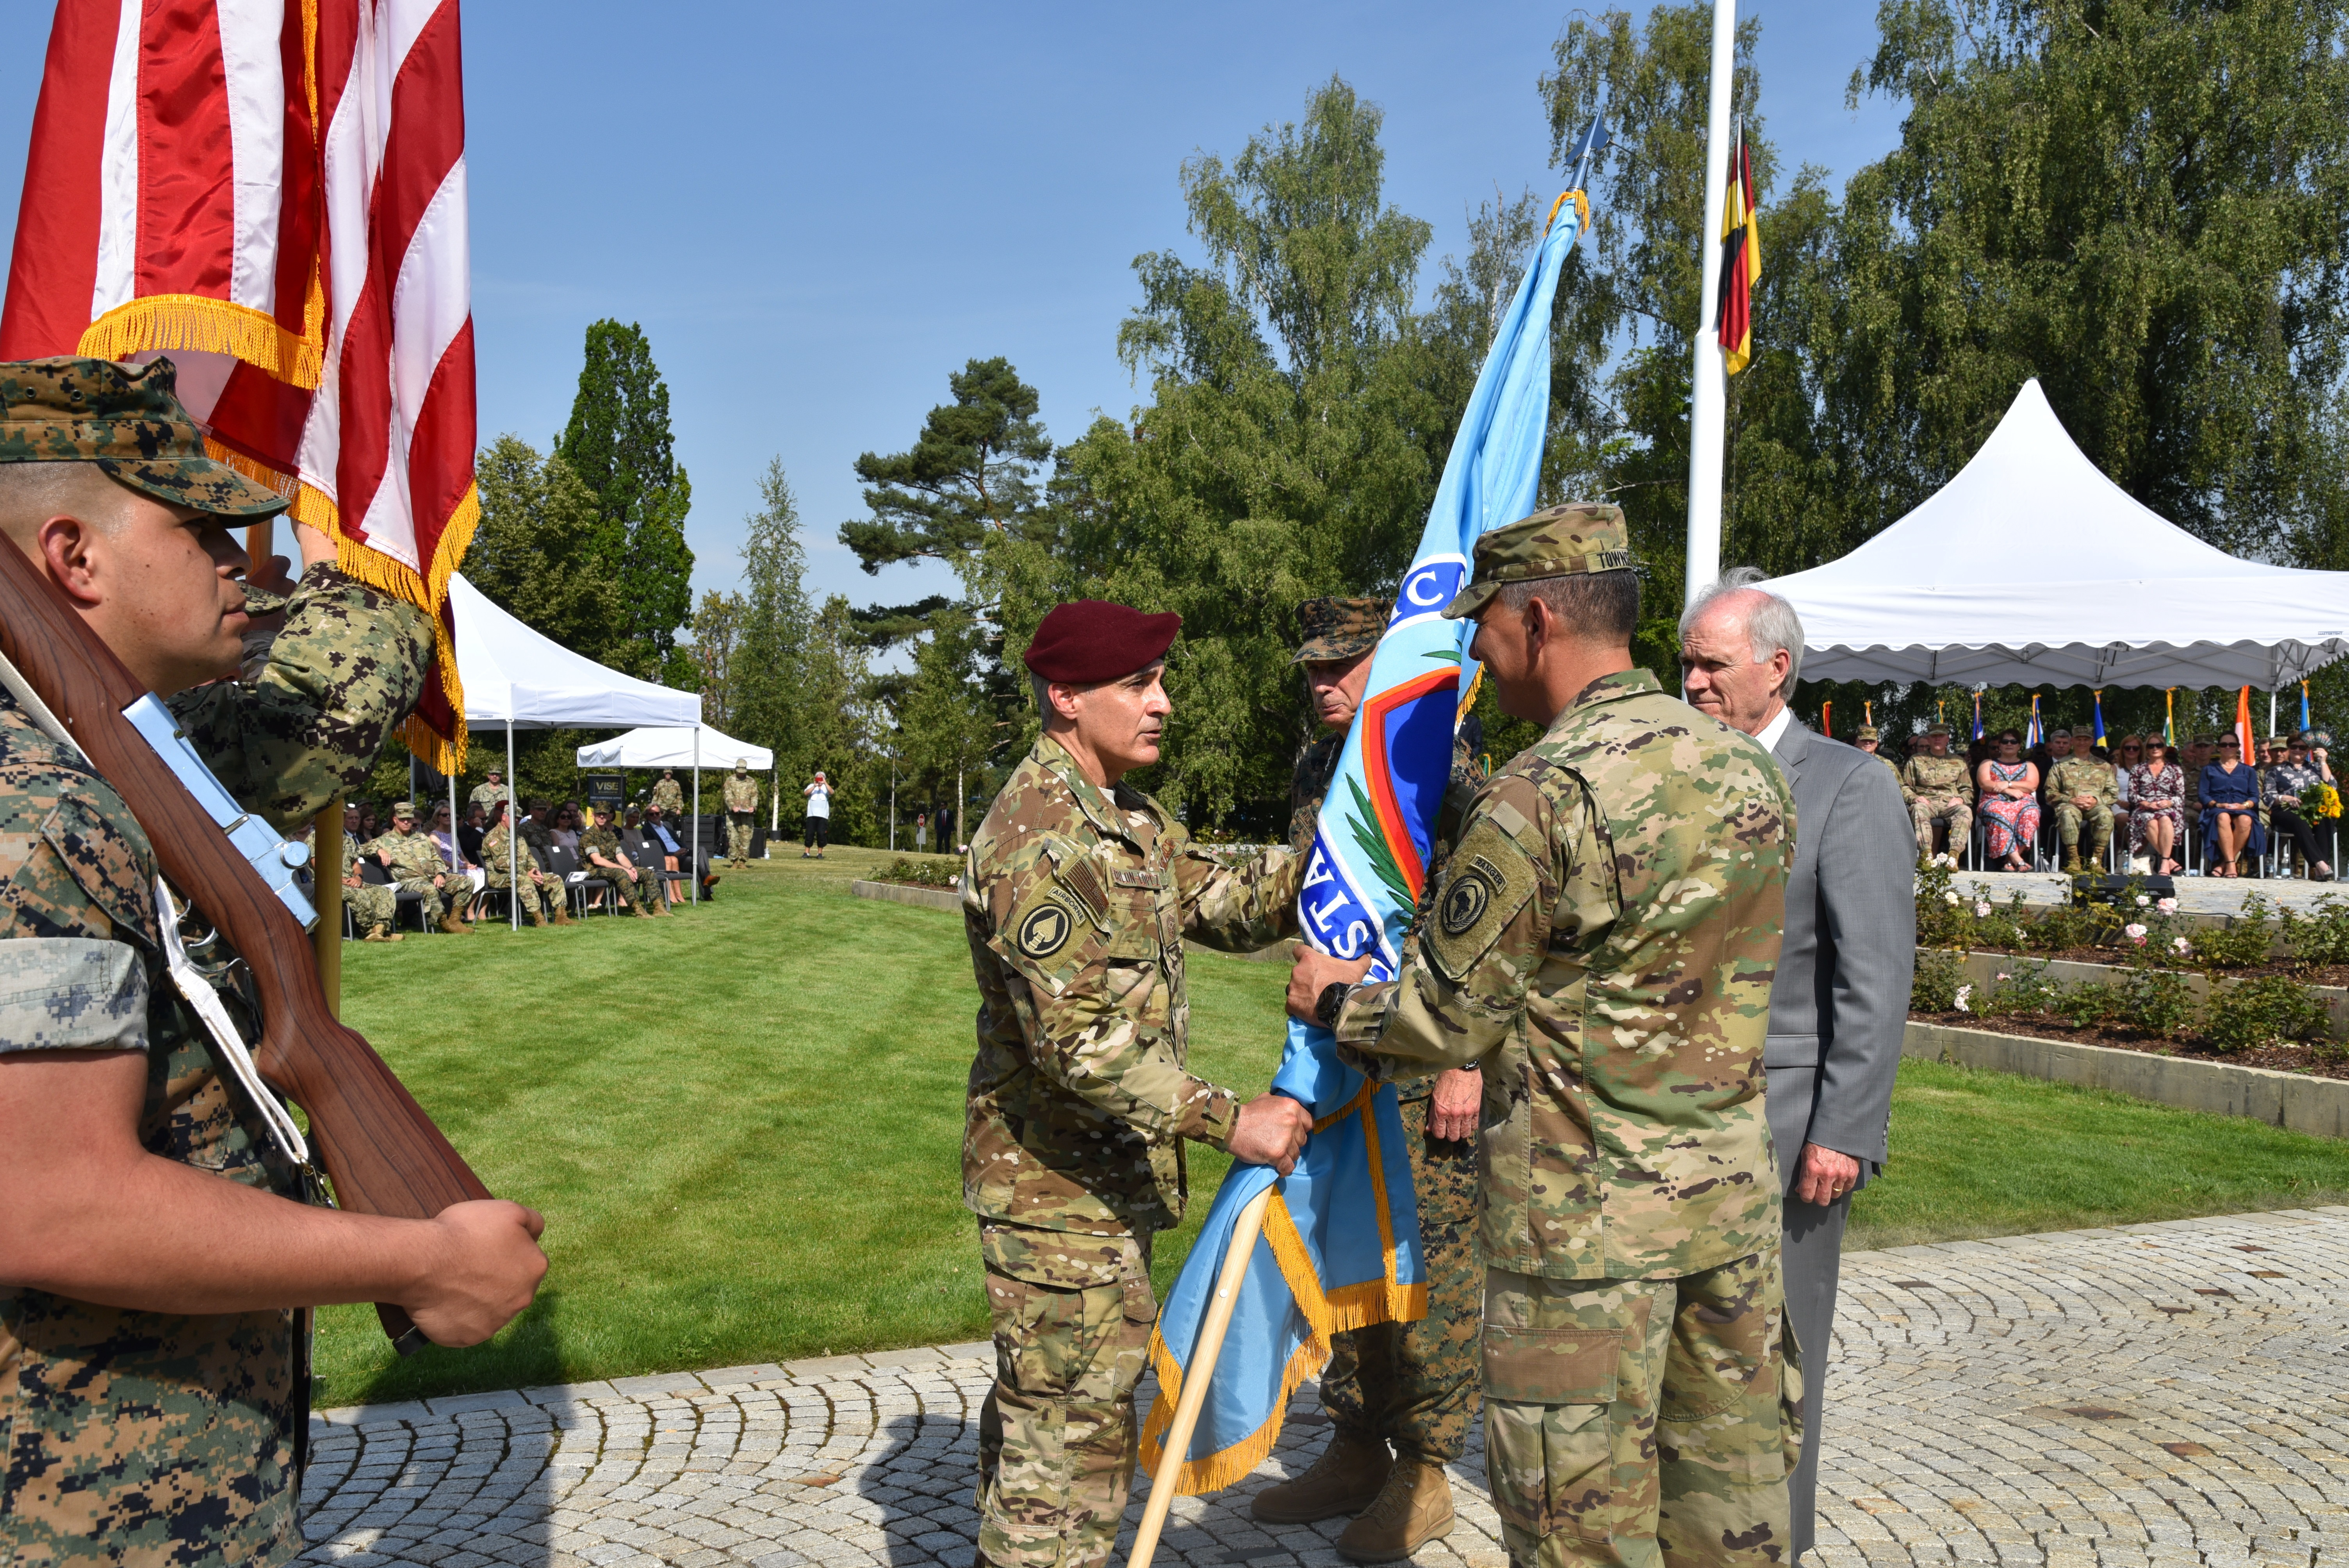 Army Gen. Stephen J. Townsend, incoming commander, hands the AFRICOM guidon to Air Force Chief Master Sgt. Ramon Colon-Lopez, AFRICOM senior enlisted leader, during a change of command ceremony at Patch Barracks in Stuttgart, Germany, July 26, 2019. AFRICOM is one of six of the U.S. Defense Department's geographic unified commands and is responsible to the Secretary of Defense for military relations with African nations, the African Union, and African regional security organizations. (U.S. Army photo by Takisha Miller/Released)